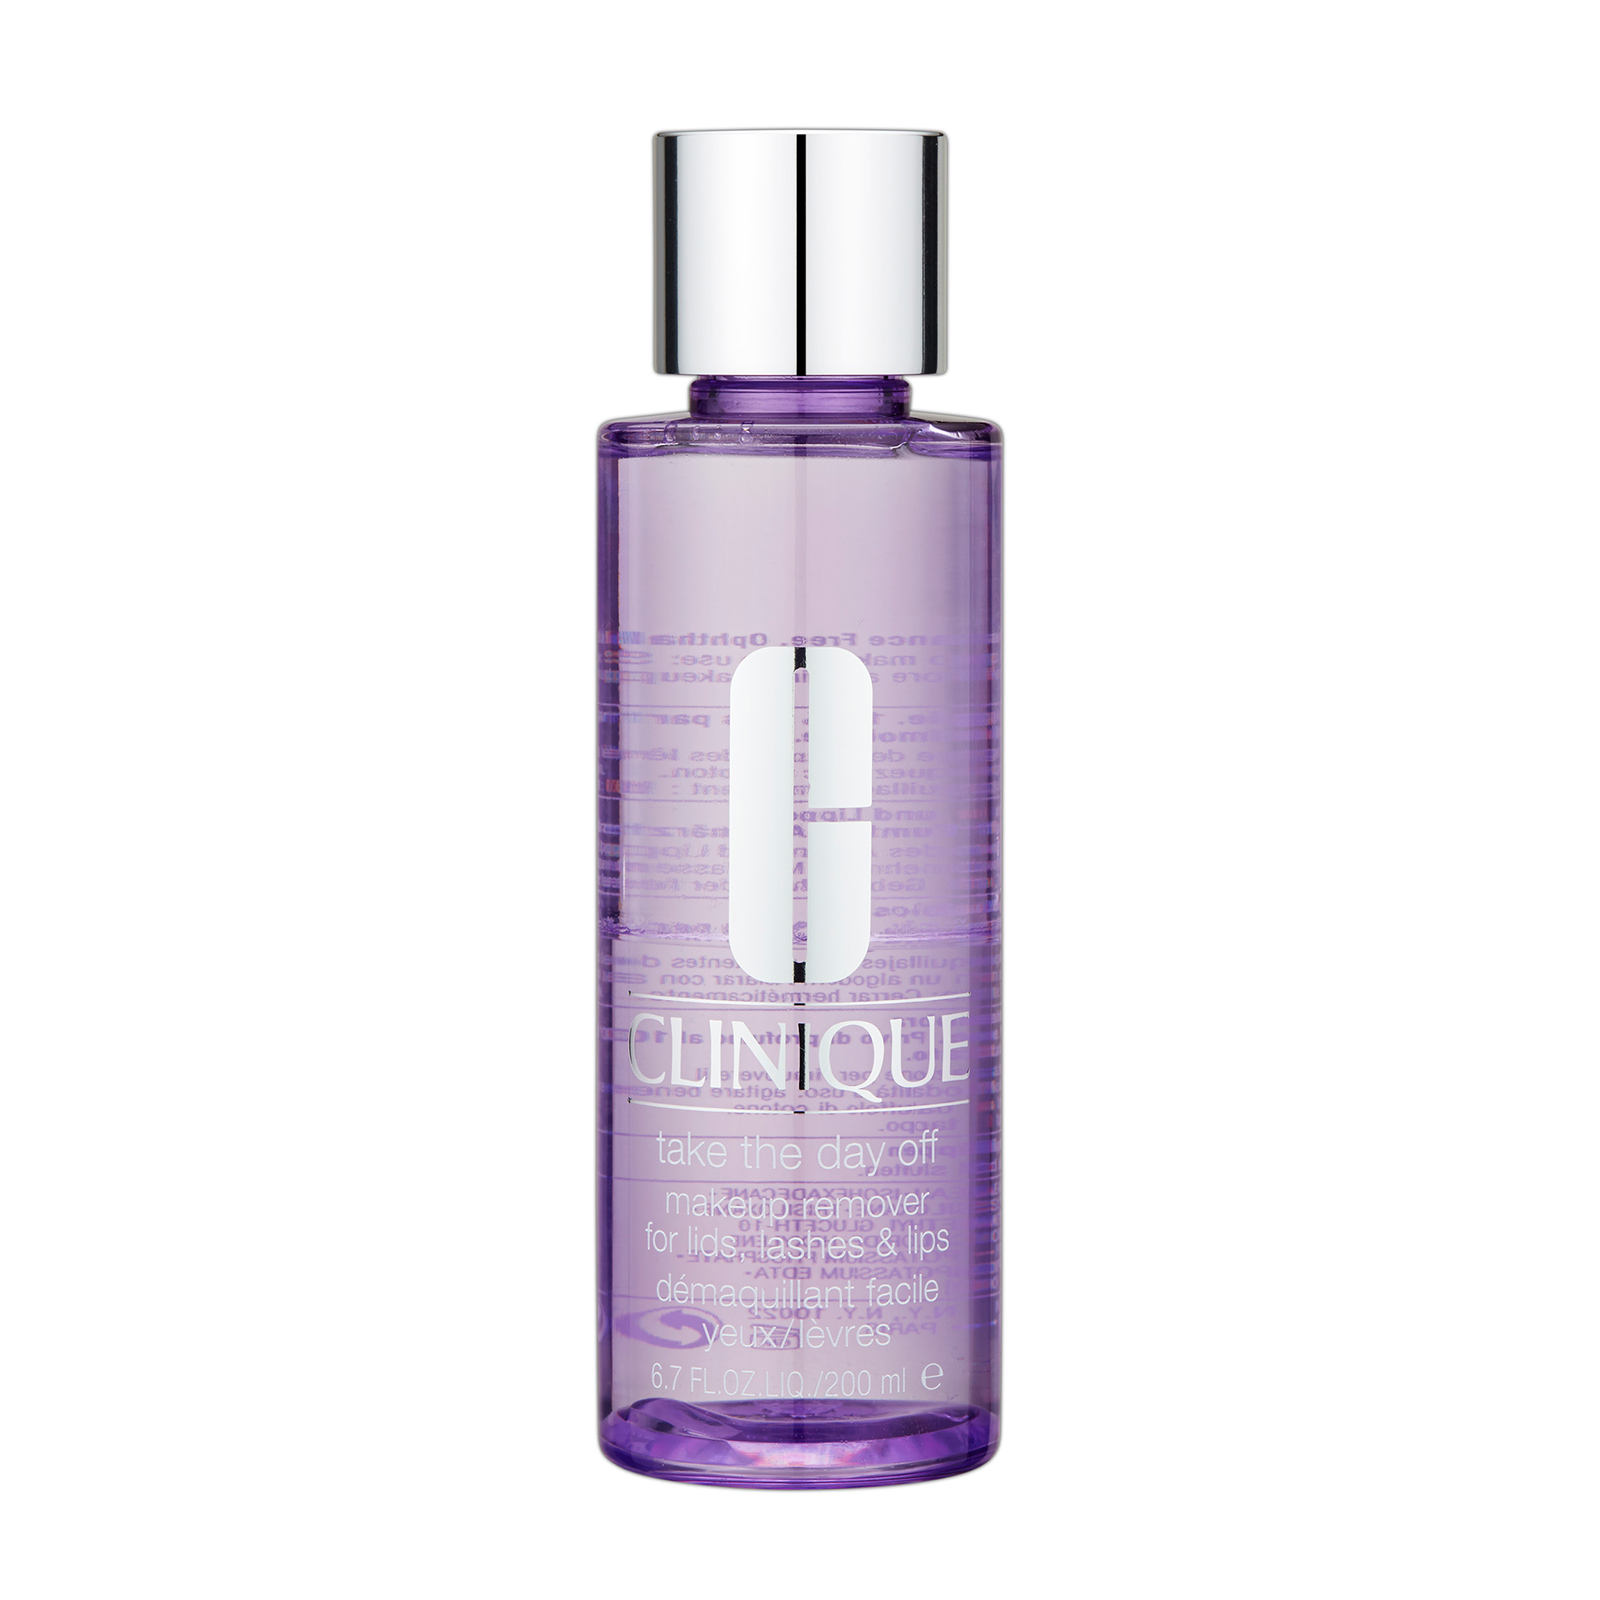 Clinique Take The Day Off Makeup Remover (for Lids, Lashes & Lips) 6.7oz, 200ml